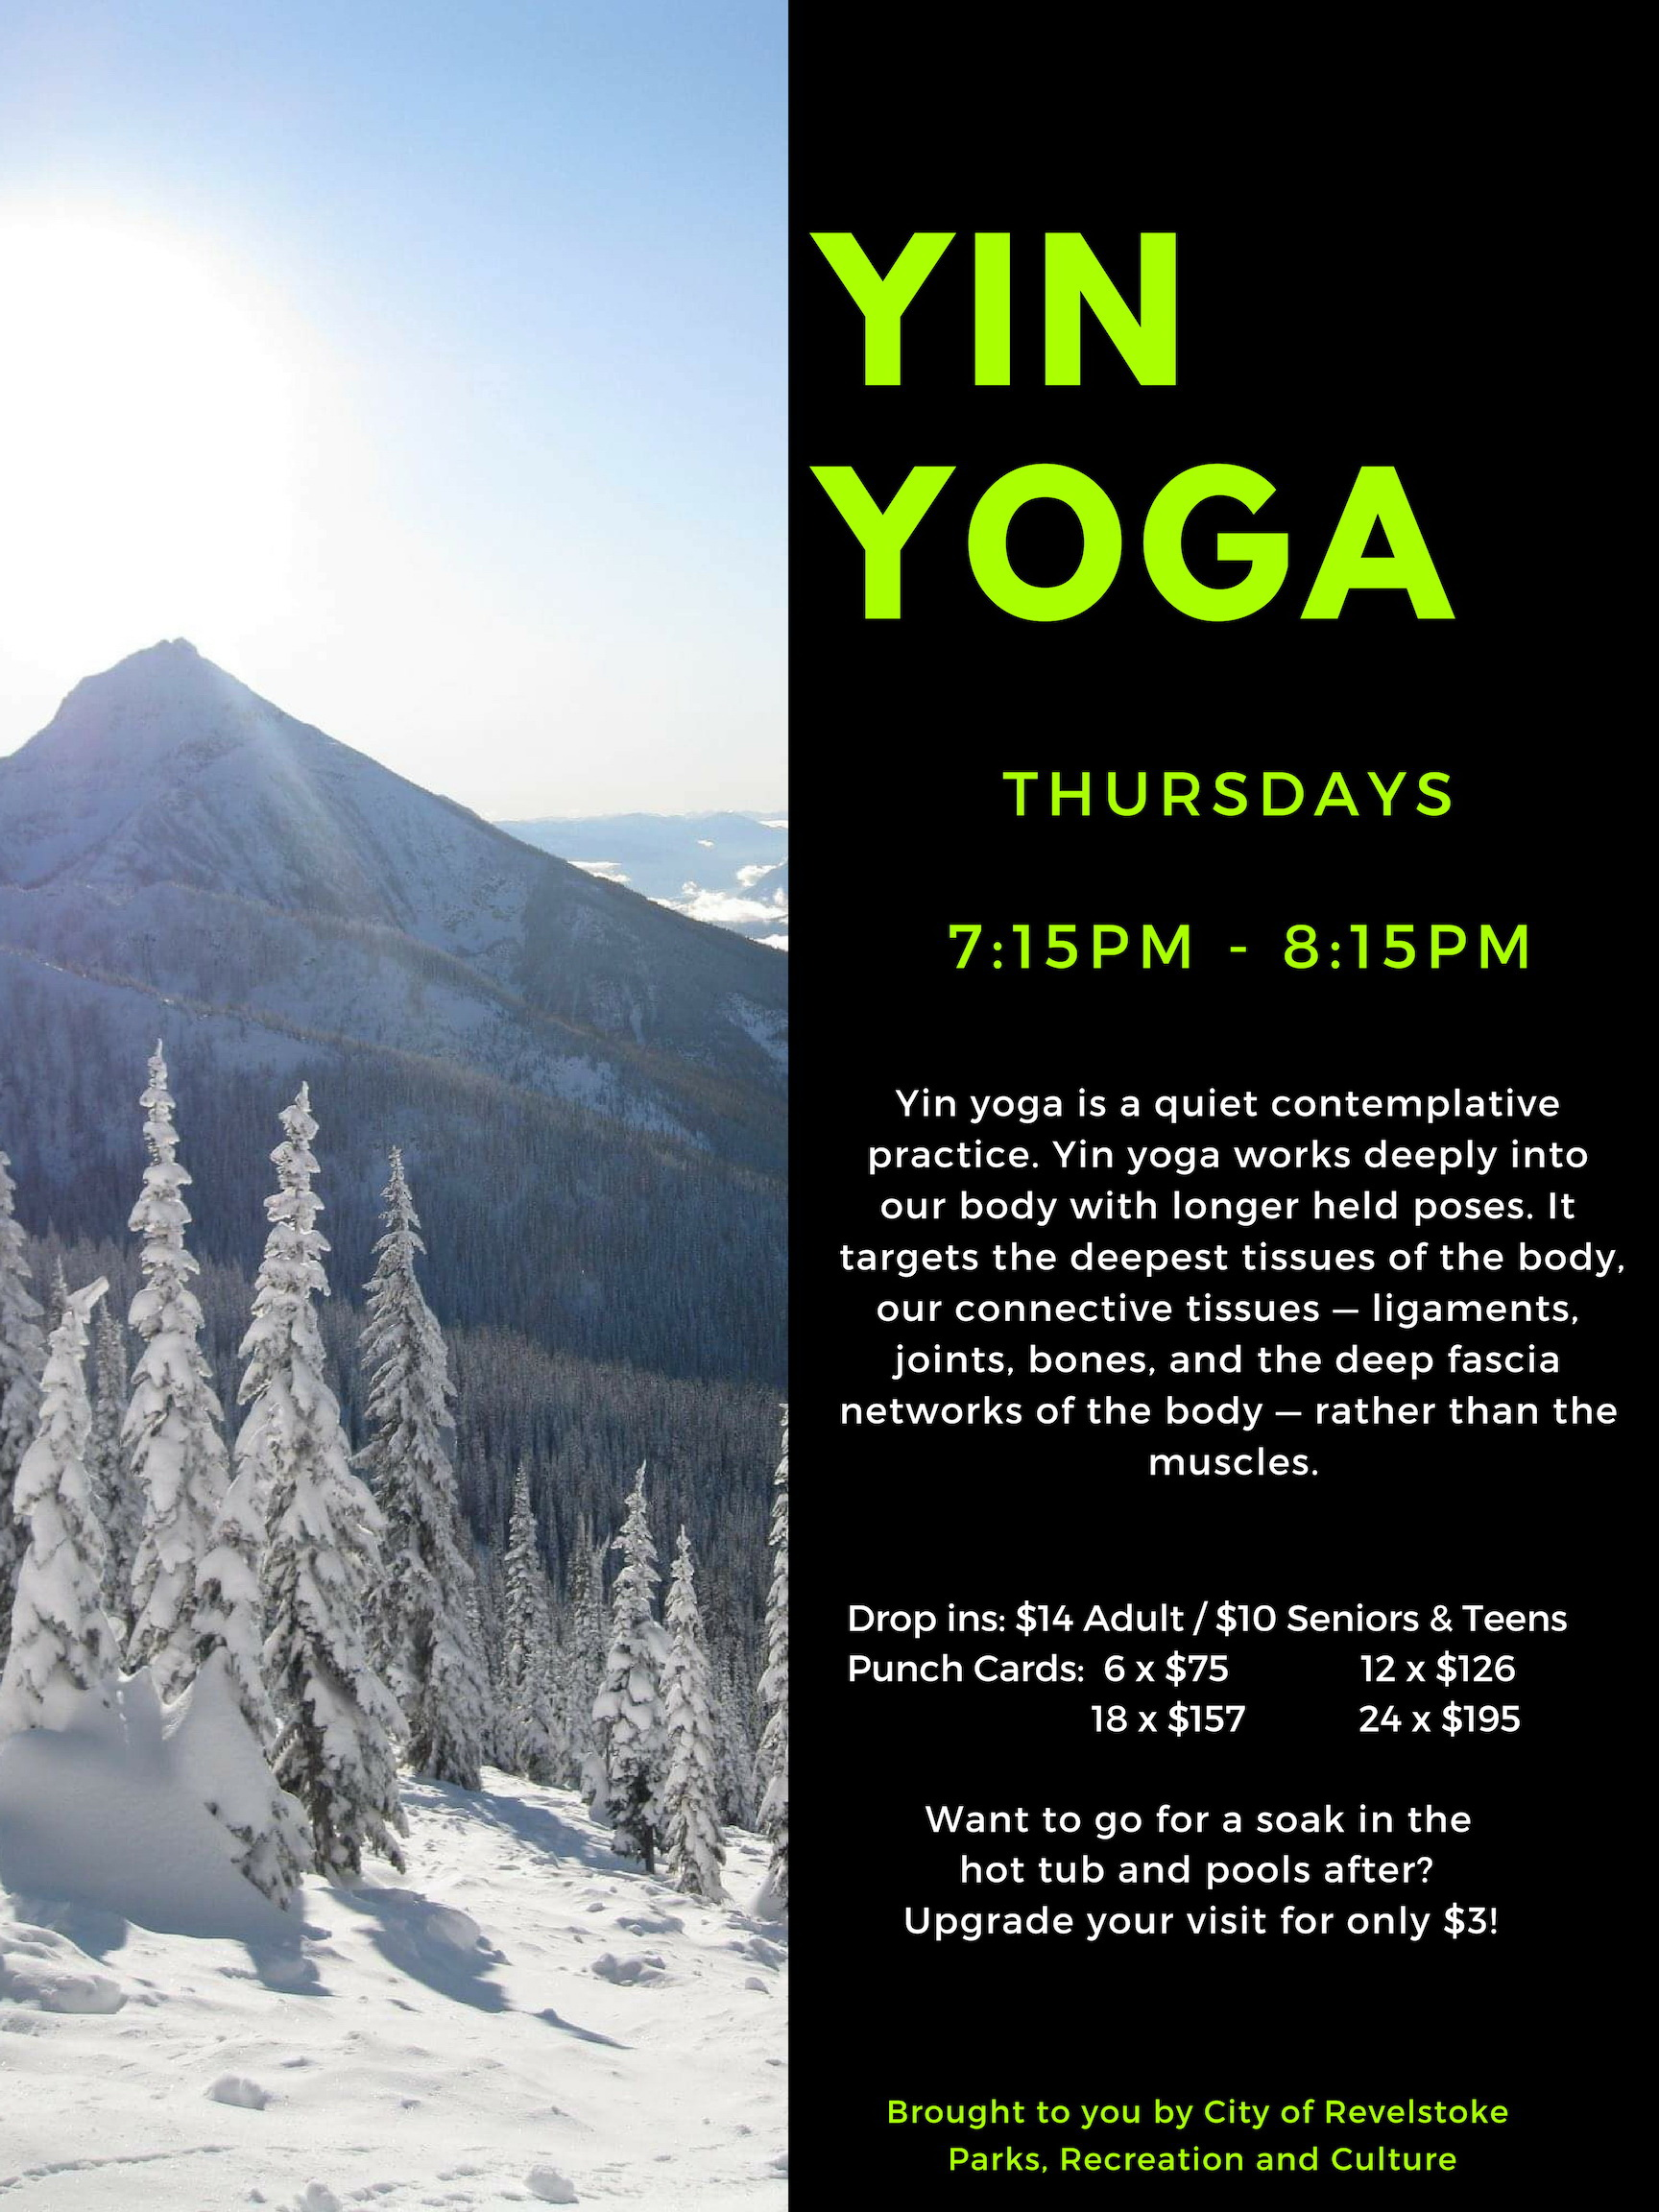 Apres Yin Yoga @ Community Centre |  |  |